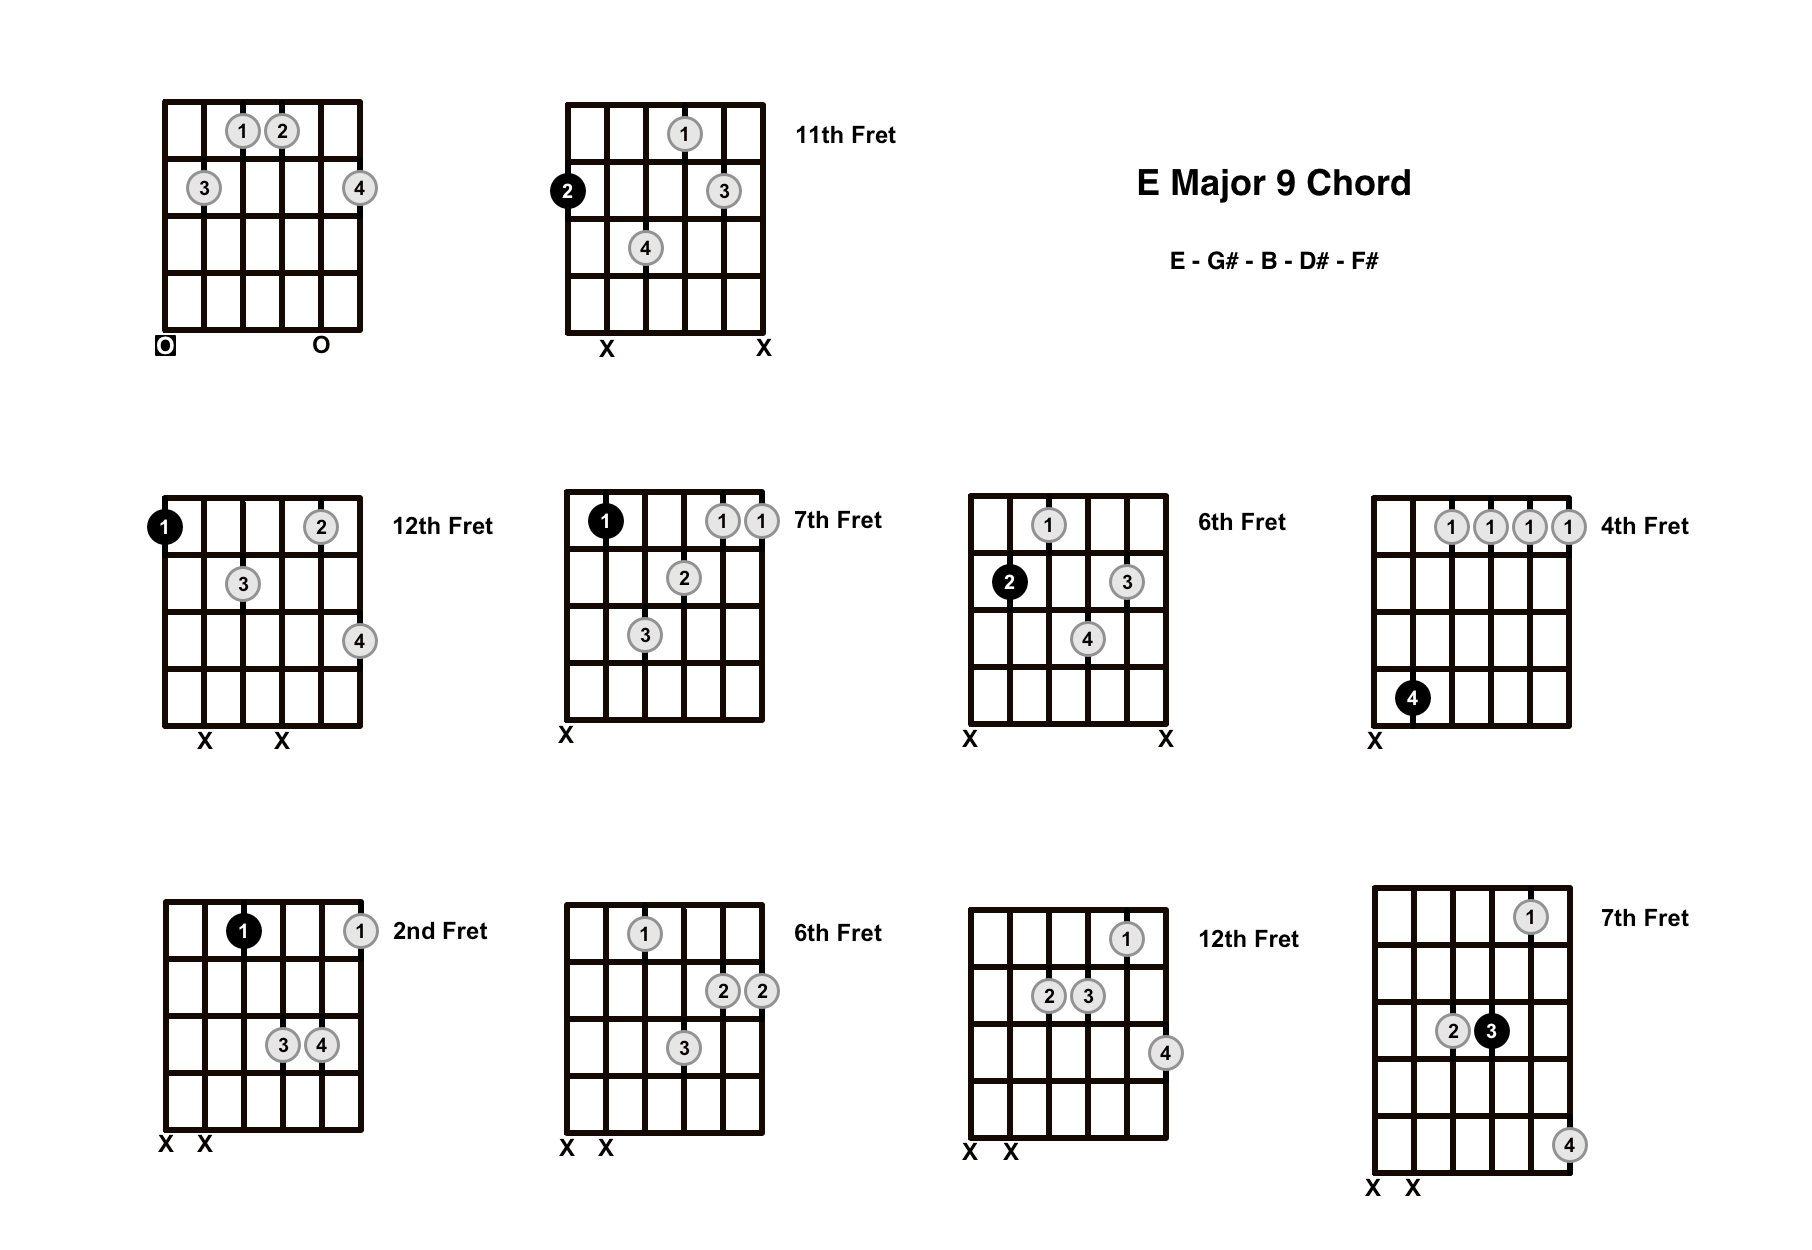 E Major 9 Chord On The Guitar (E Maj 9) – Diagrams, Finger Positions and Theory